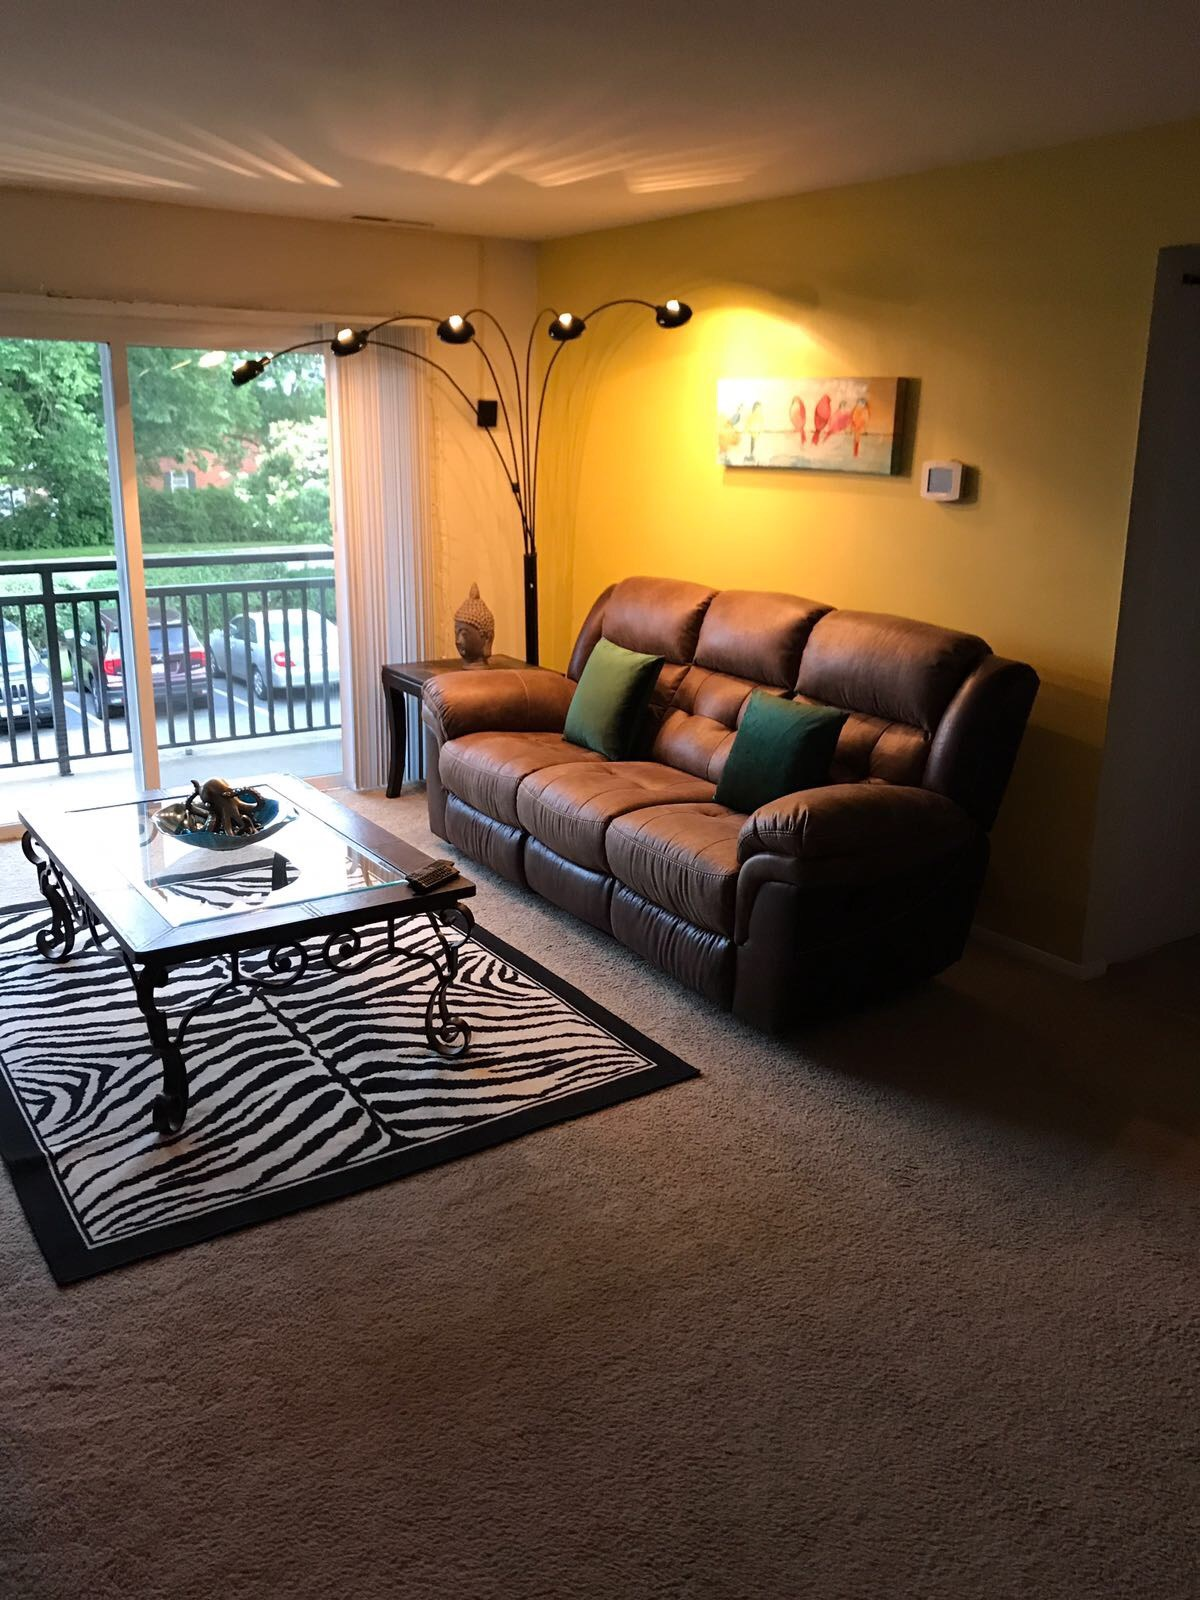 Single Room For Rent In Towson In Baltimore Md 1189998 Sulekha